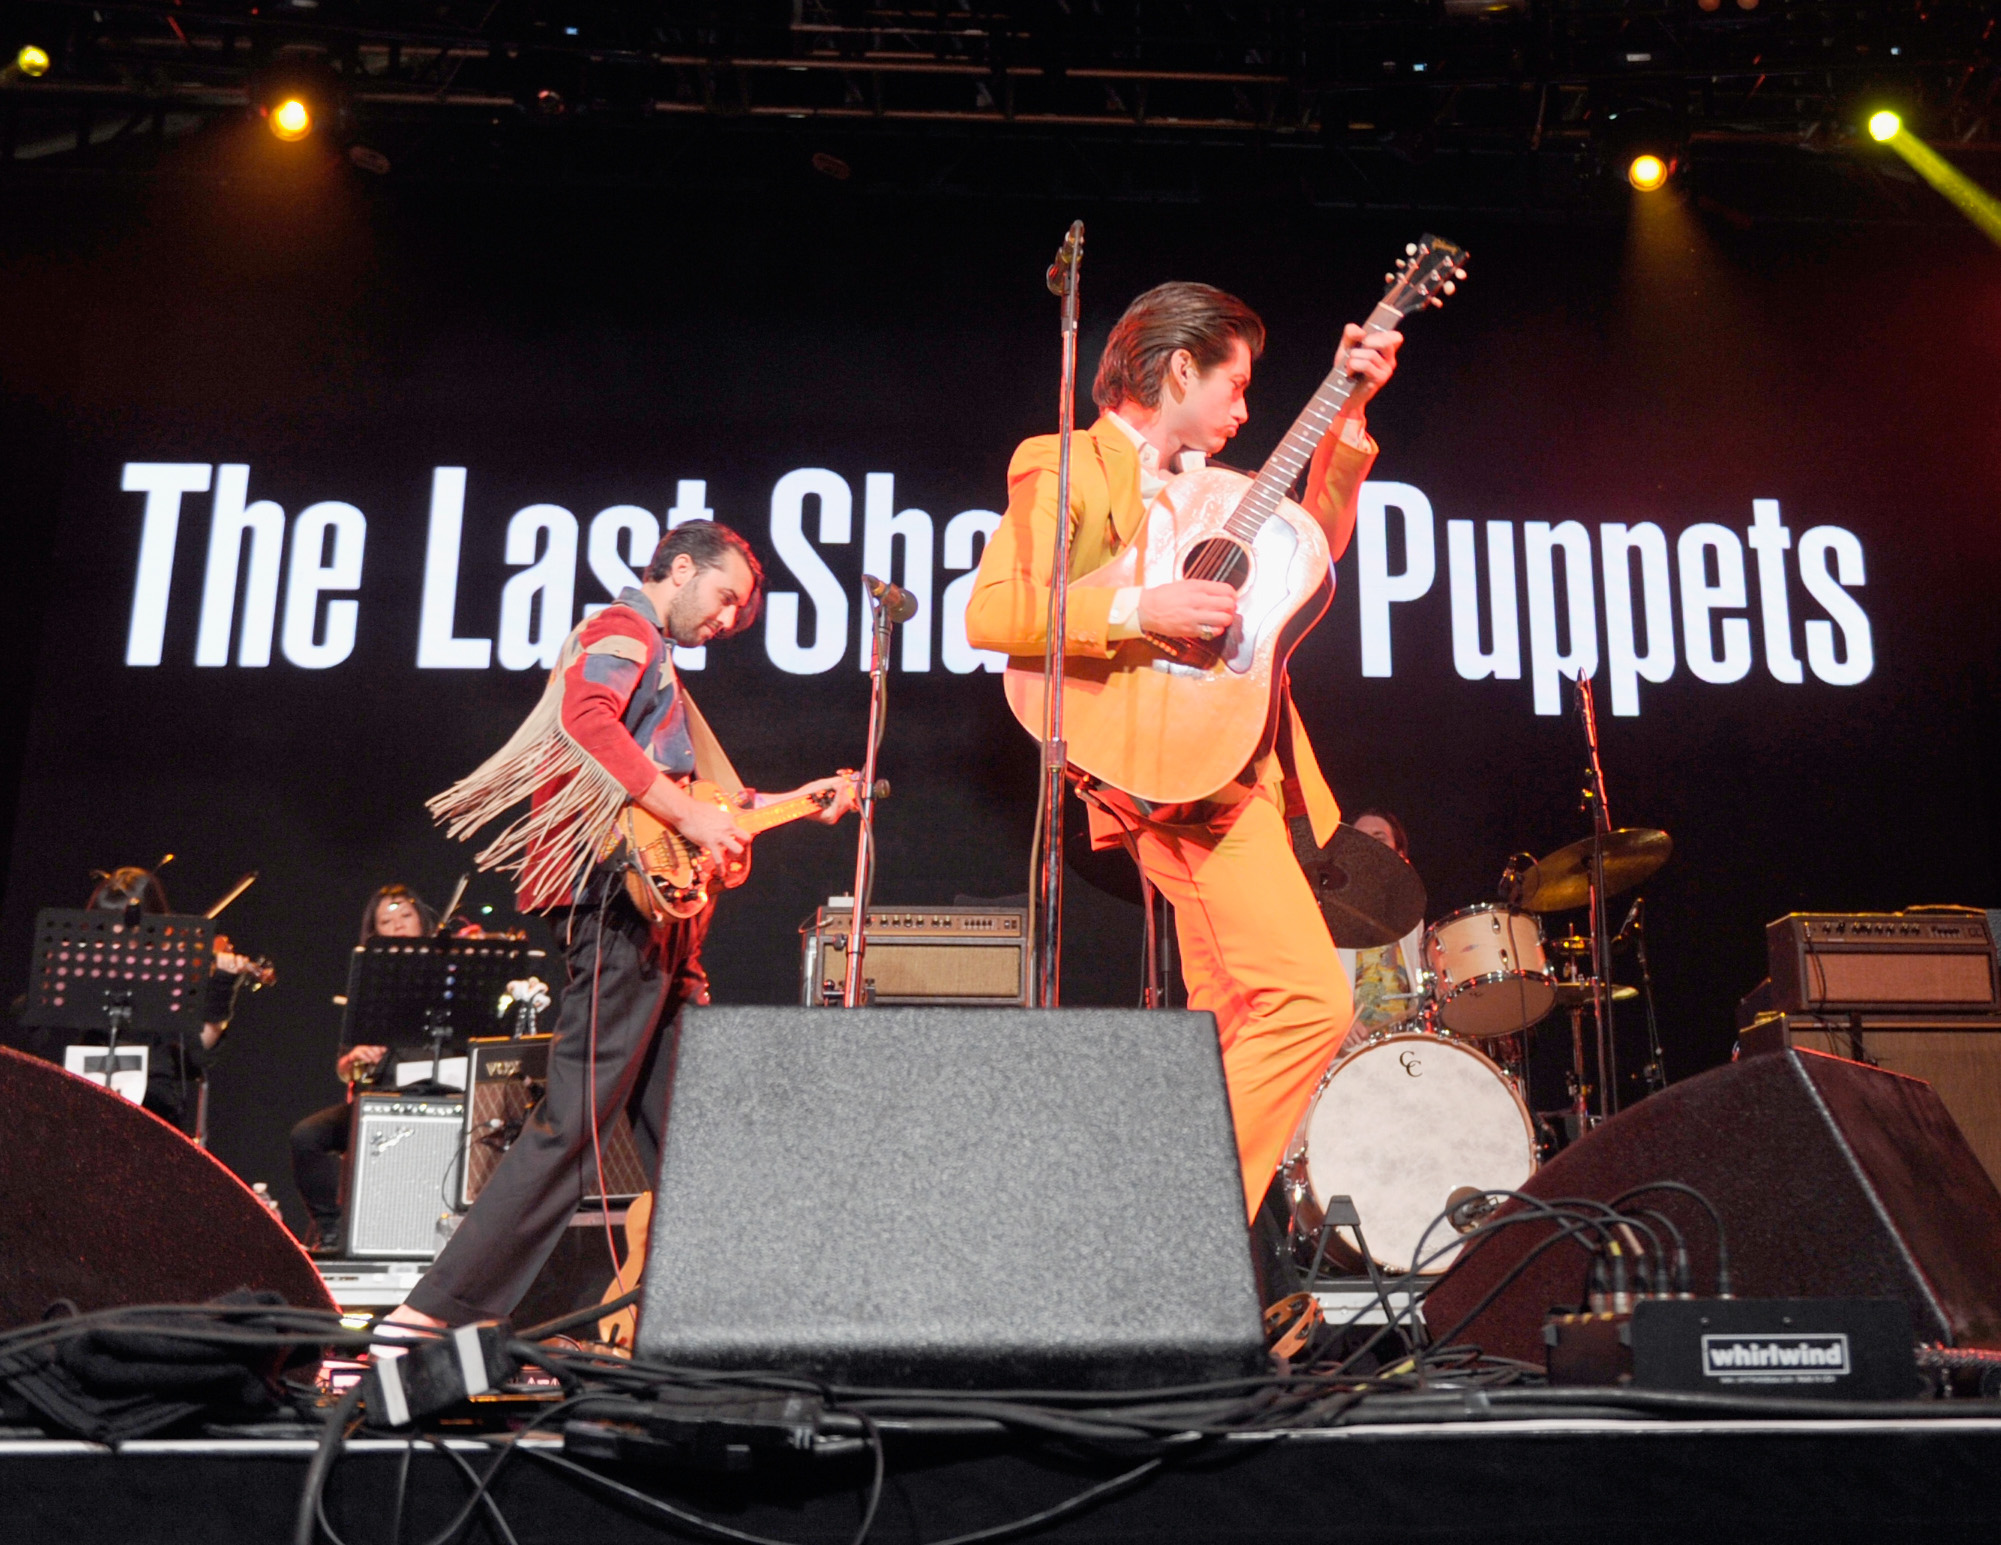 INDIO, CA - APRIL 15: Musicians Zach Dawes (L) and Alex Turner of The Last Shadow Puppets perform onstage during day 1 of the 2016 Coachella Valley Music & Arts Festival Weekend 1 at the Empire Polo Club on April 15, 2016 in Indio, California. (Photo by Emma McIntyre/Getty Images for Coachella)